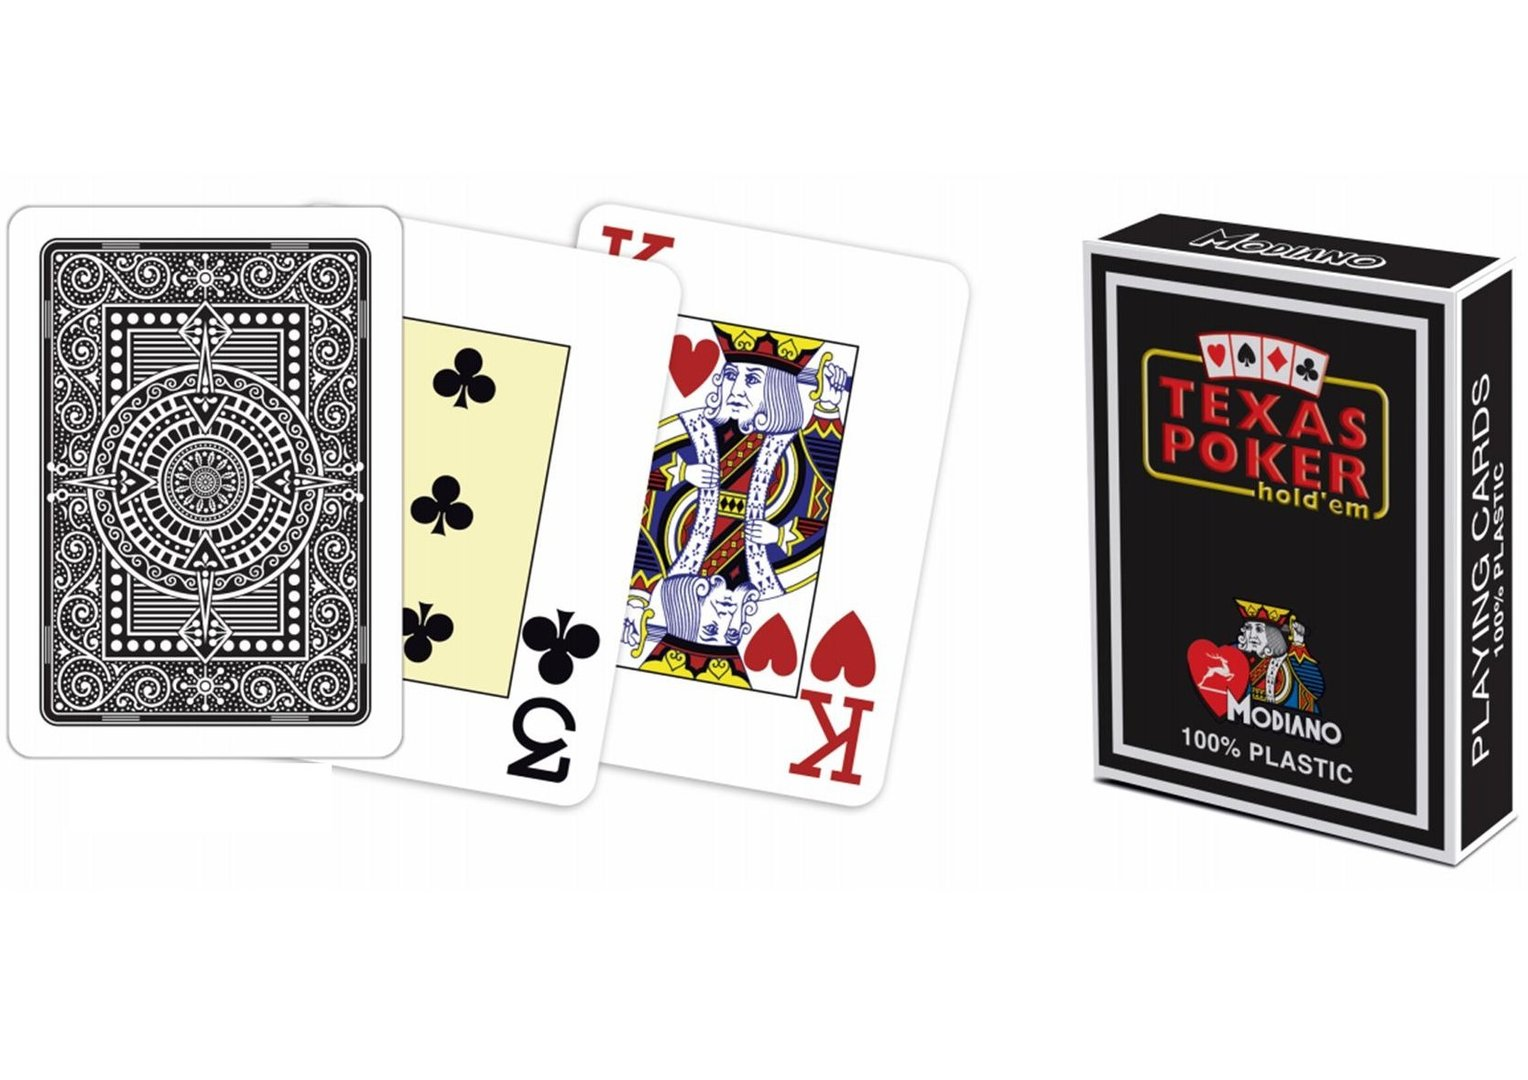 Format poker cards